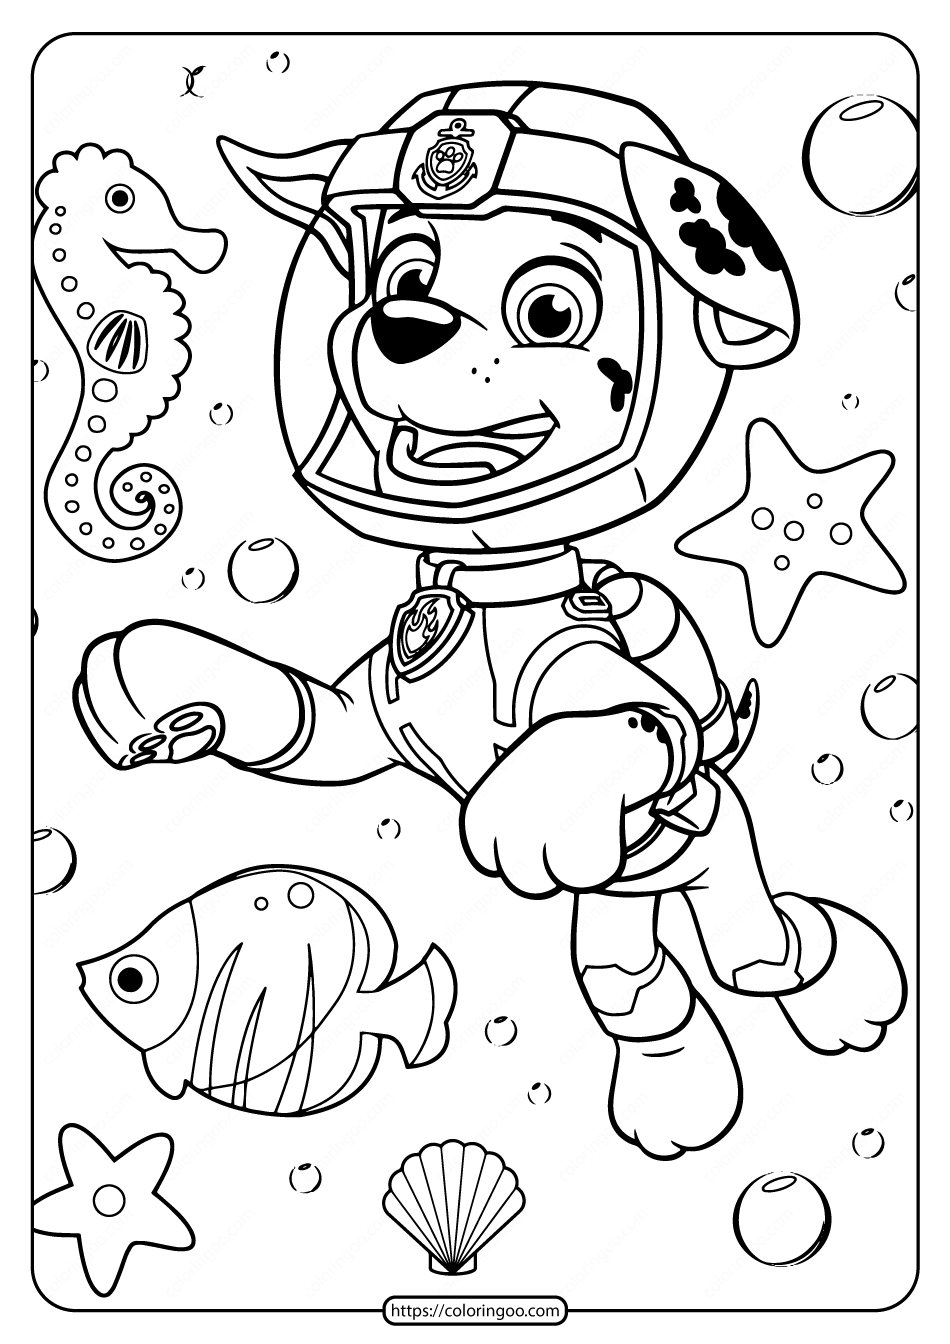 colouring pages to print free printable paw patrol pdf coloring pages print pages to free colouring